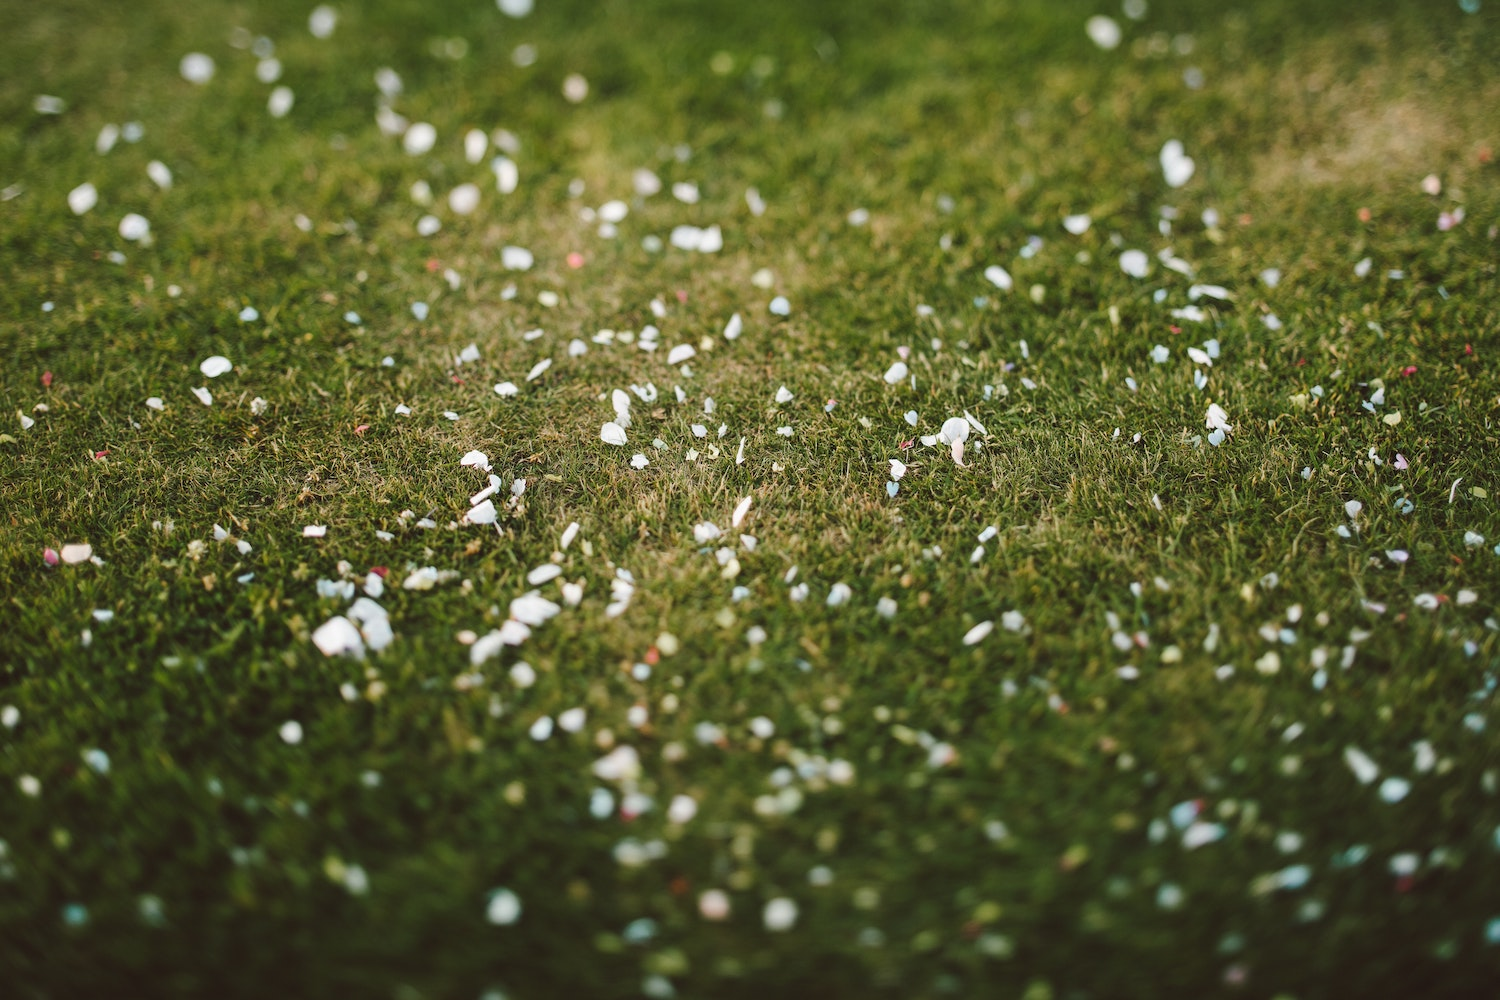 Eco-friendly confetti spread across the grass - image by Jason Wong from Pexels